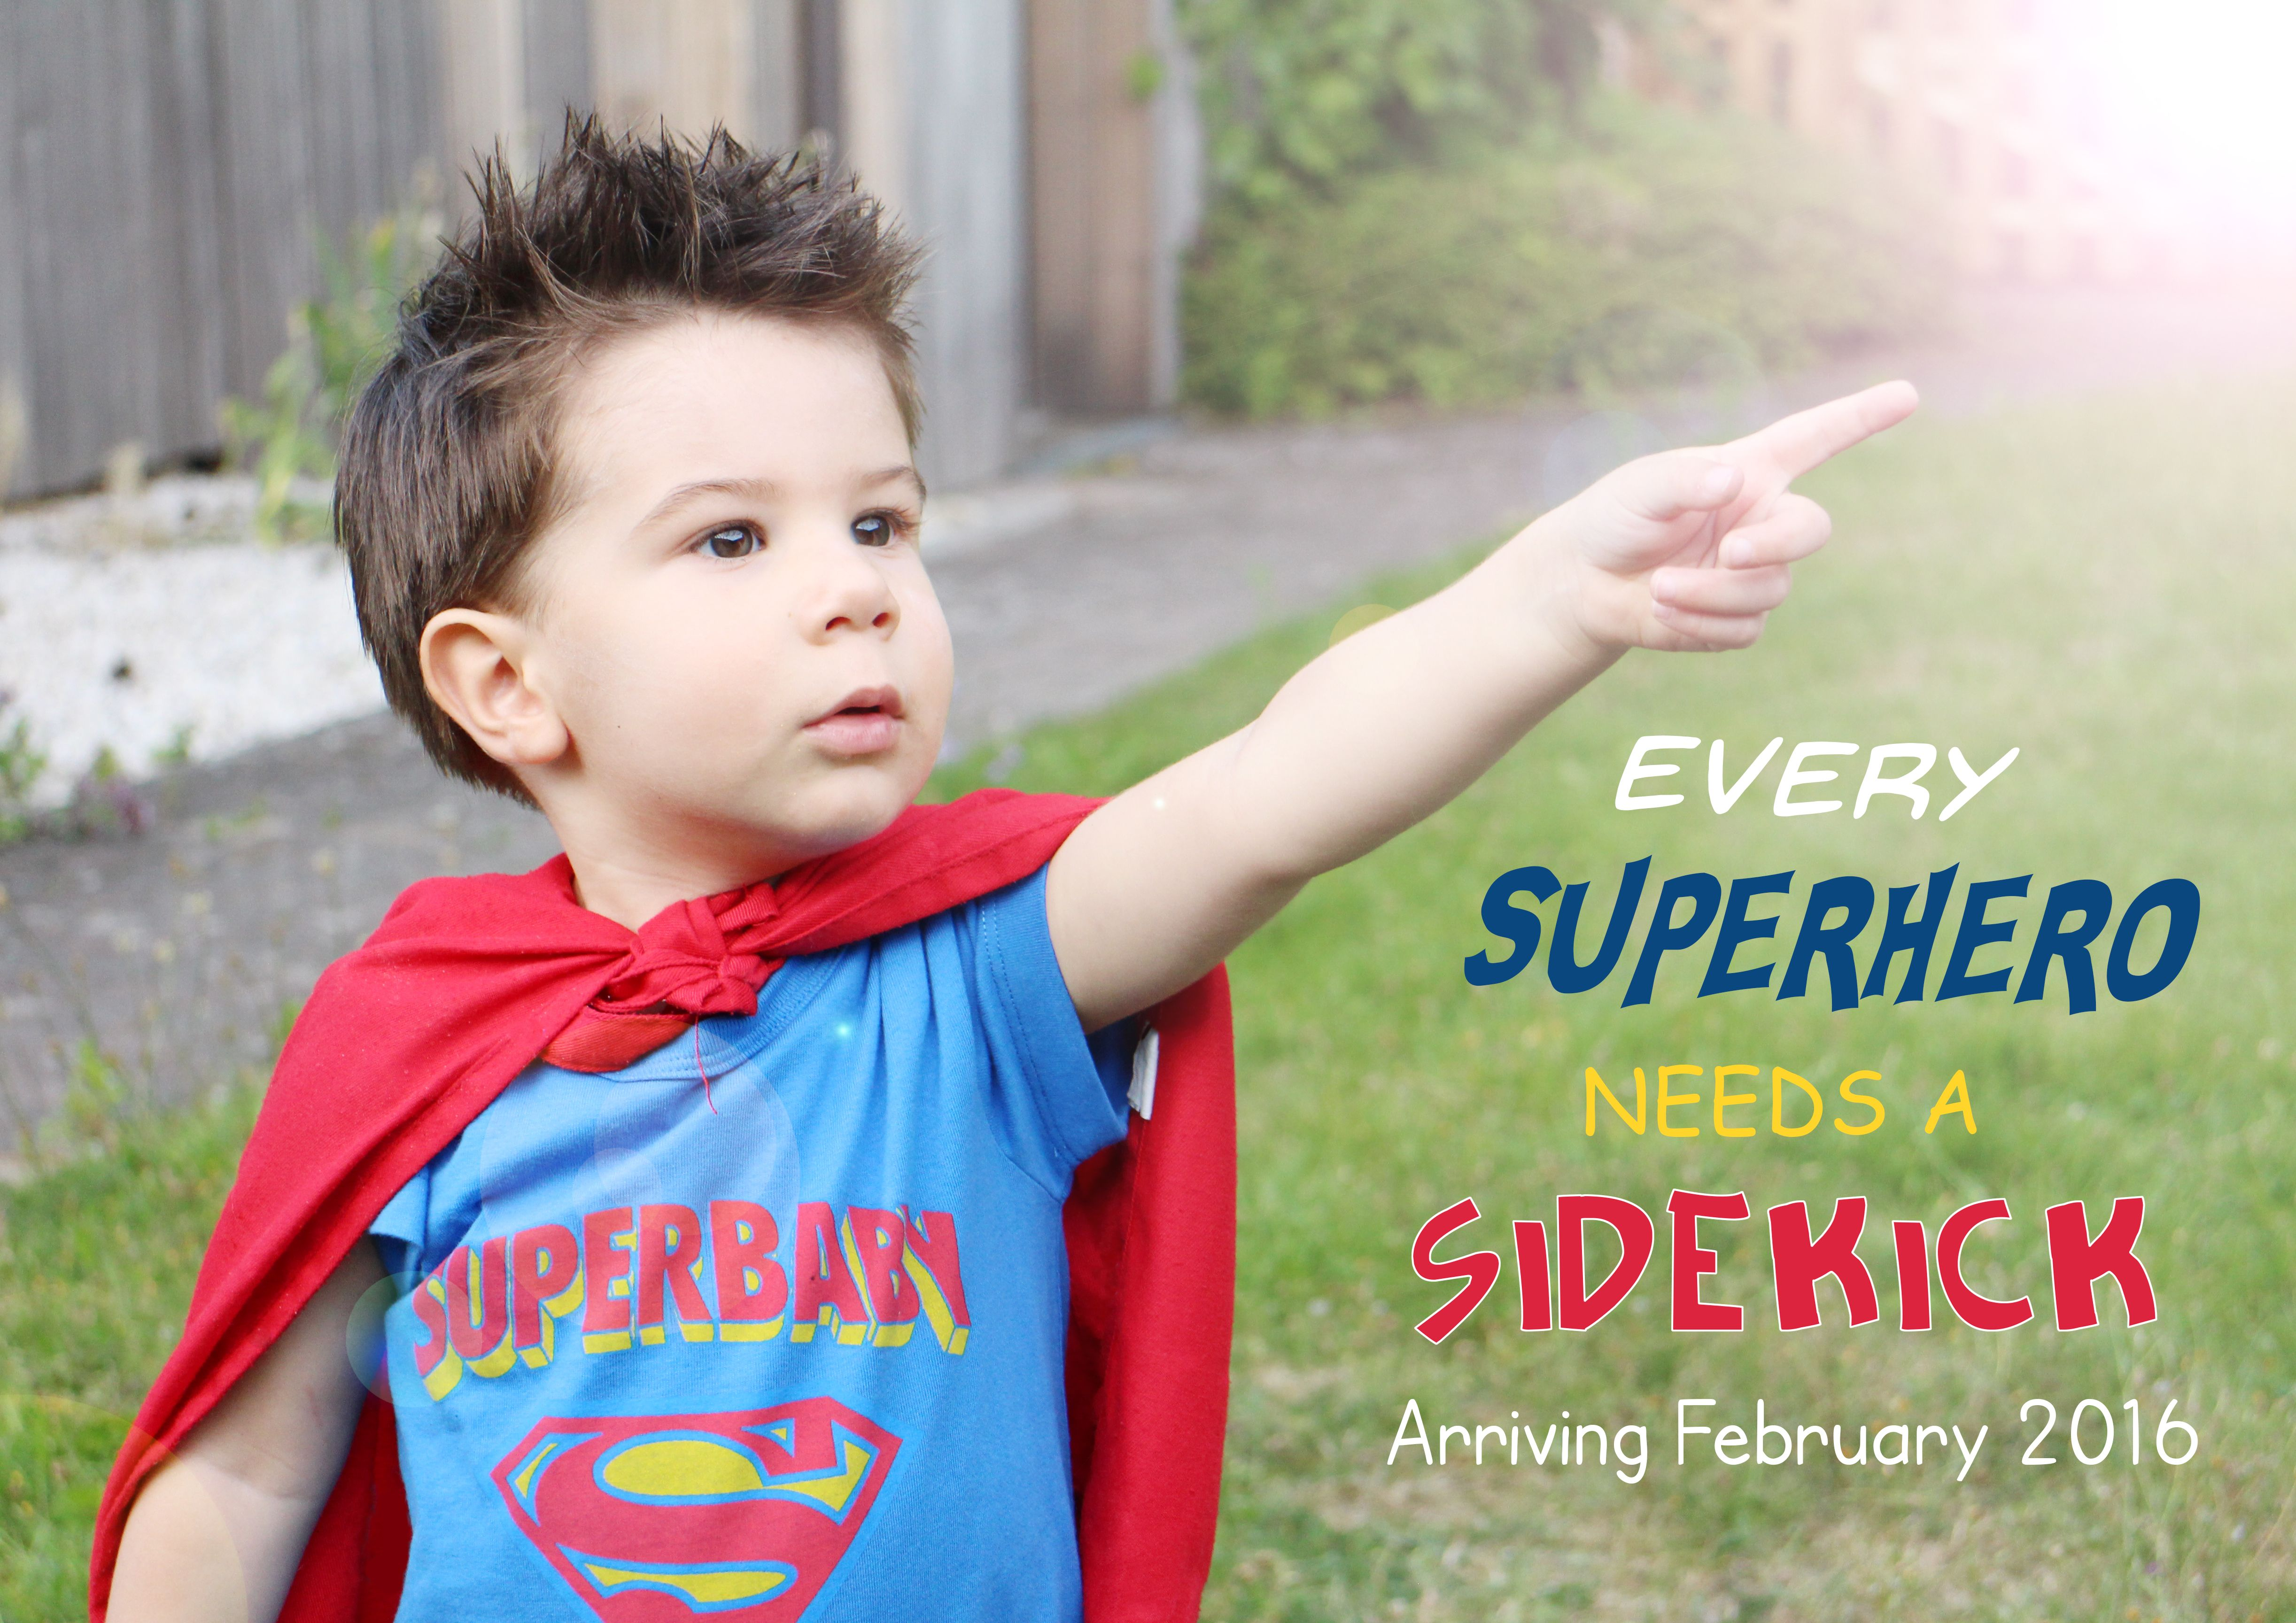 Baby 2 Announcement Every Super Hero Needs A Sidekick Baby 2 Announcement Superhero Announcement